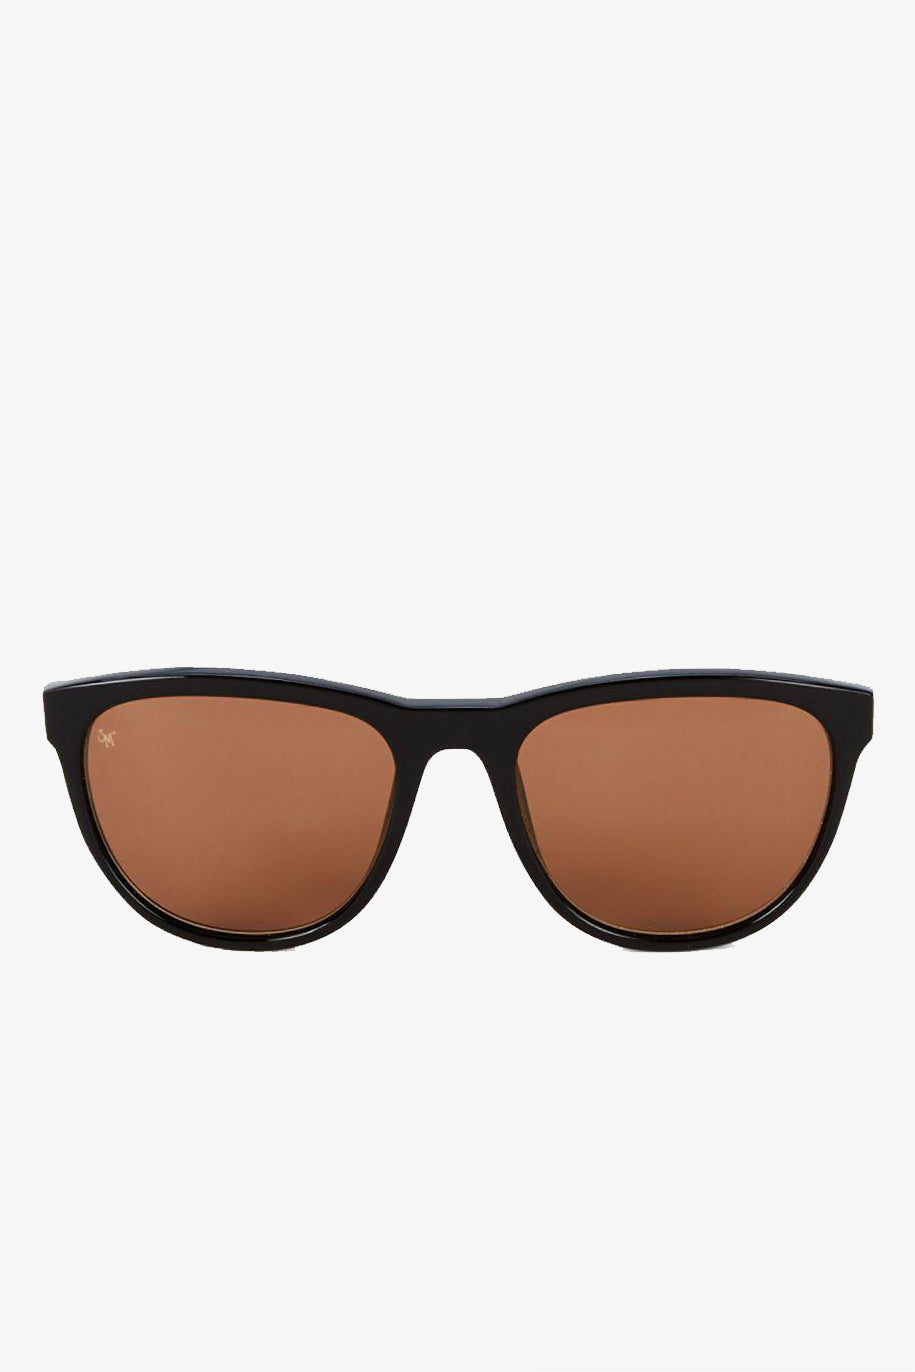 Passenger Sunglasses in Black